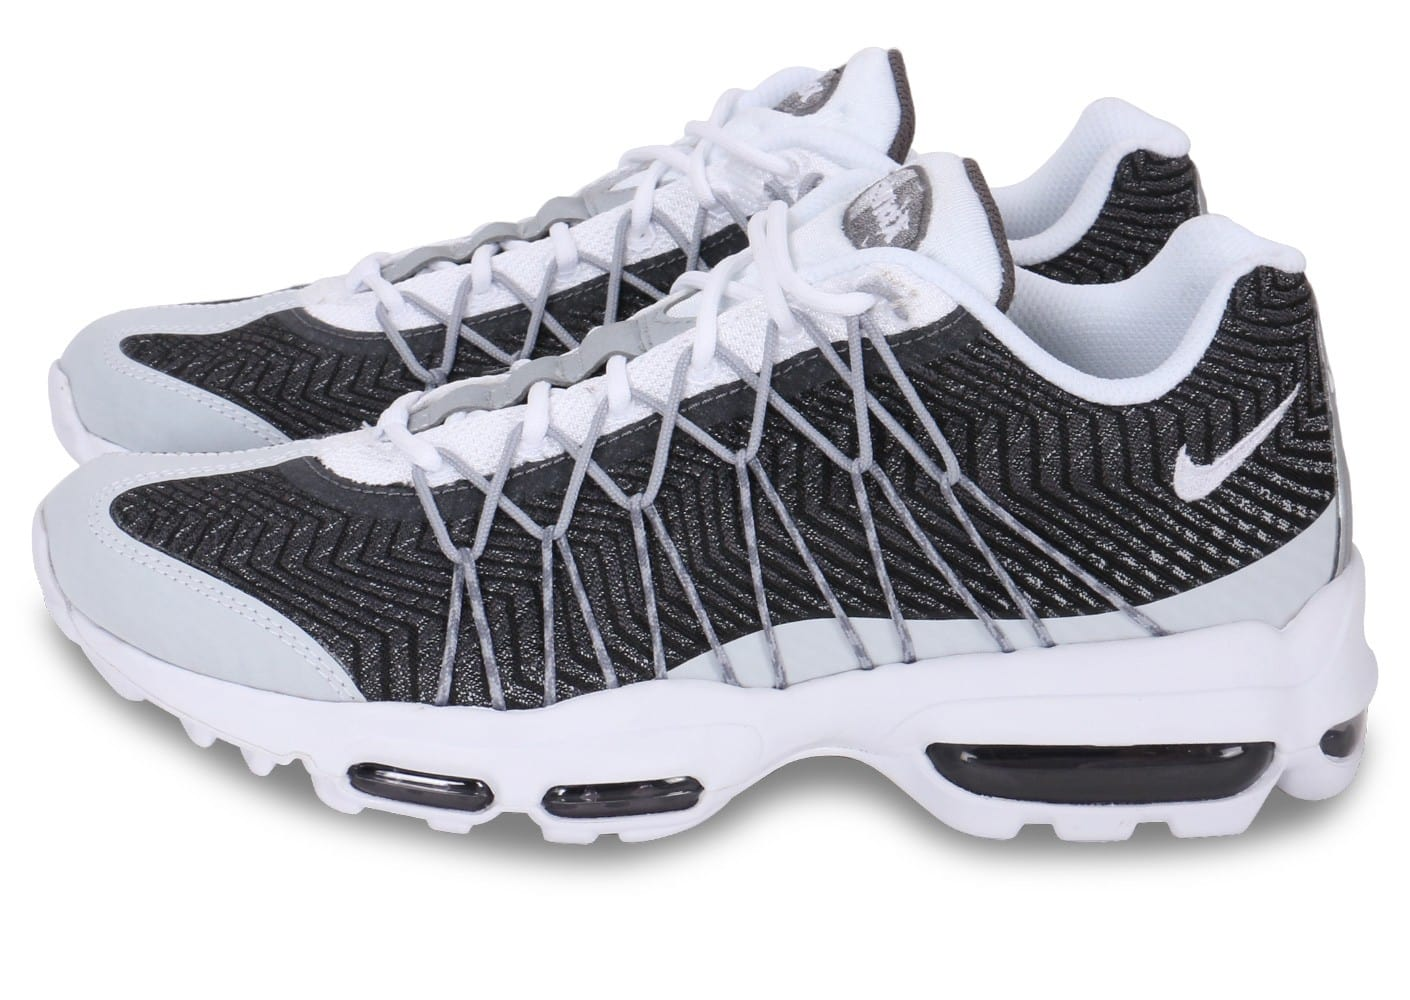 07dcc36315dba Réduction authentique air max 95 jacquard blanc gris Baskets ...